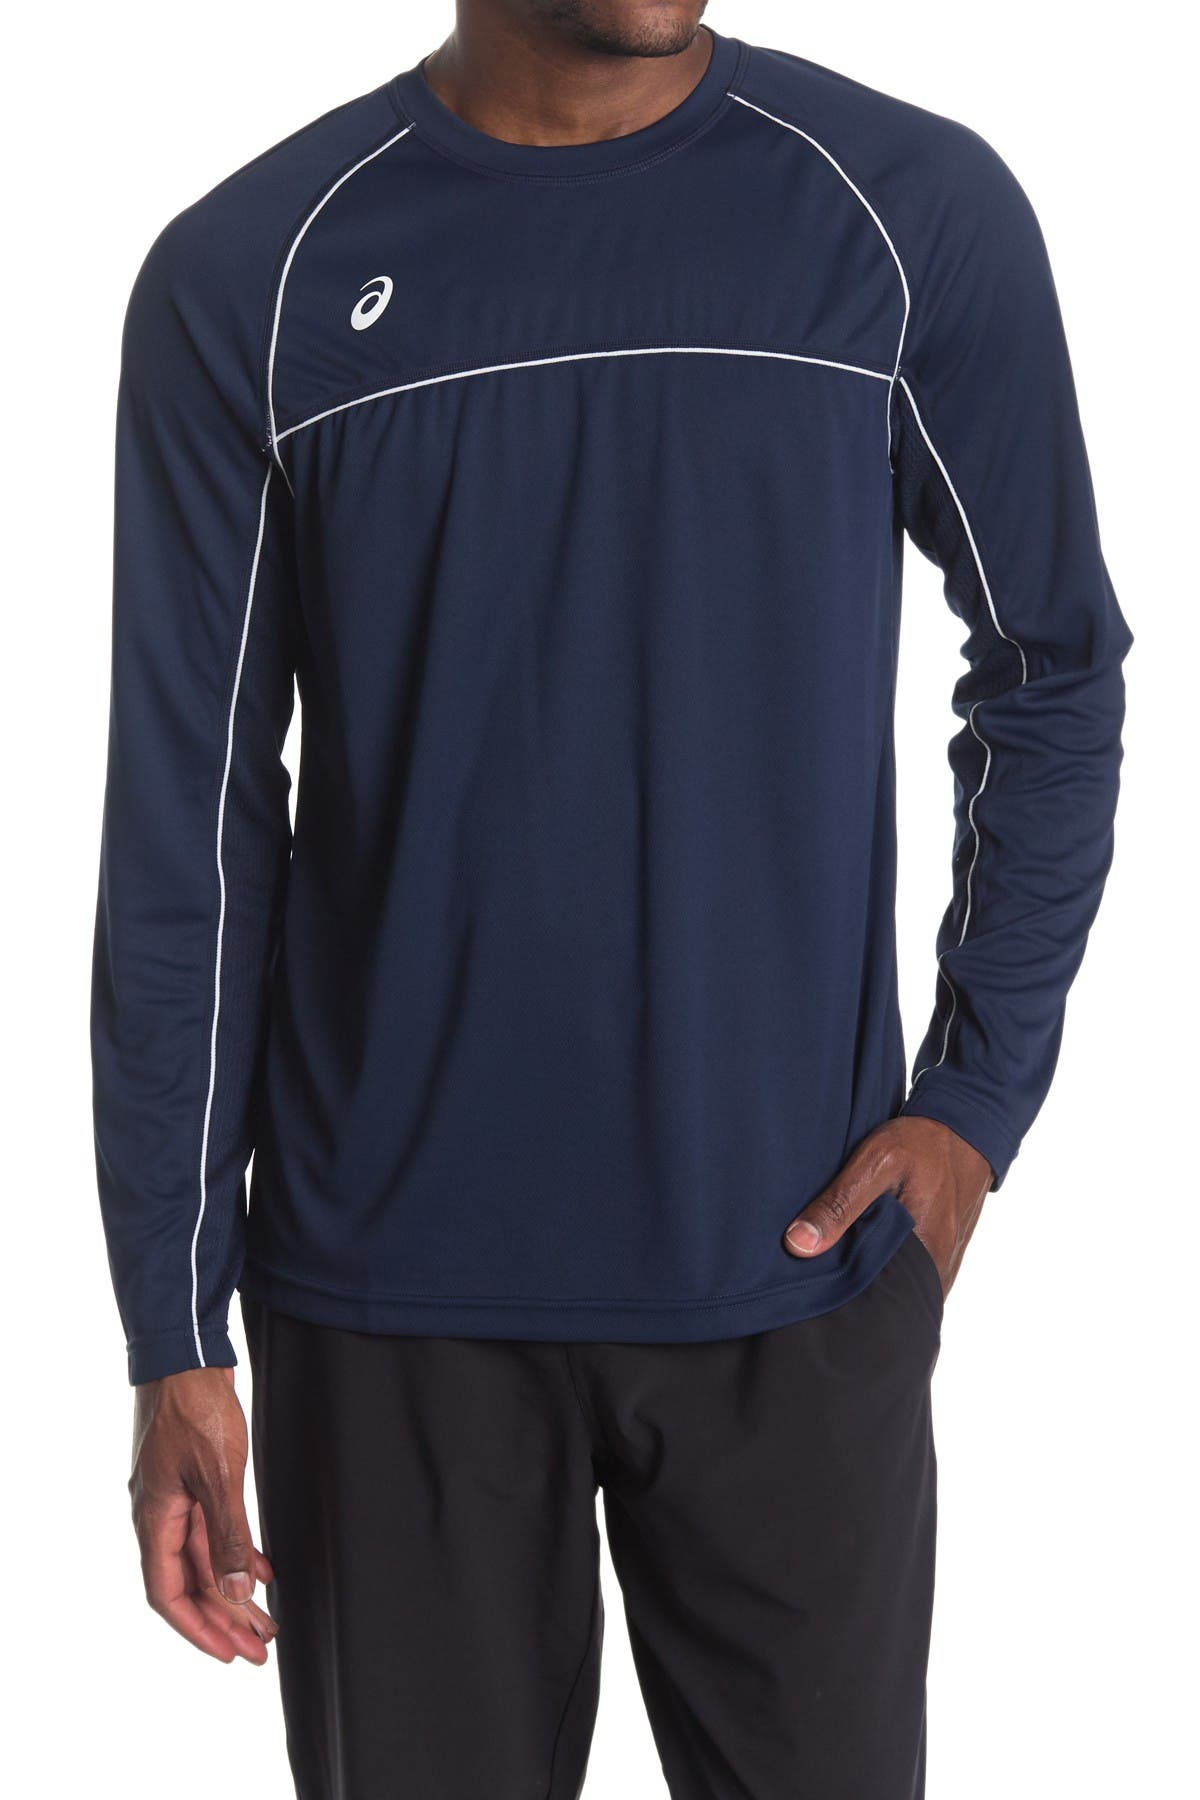 Image of ASICS Conform Long Sleeve Jersey